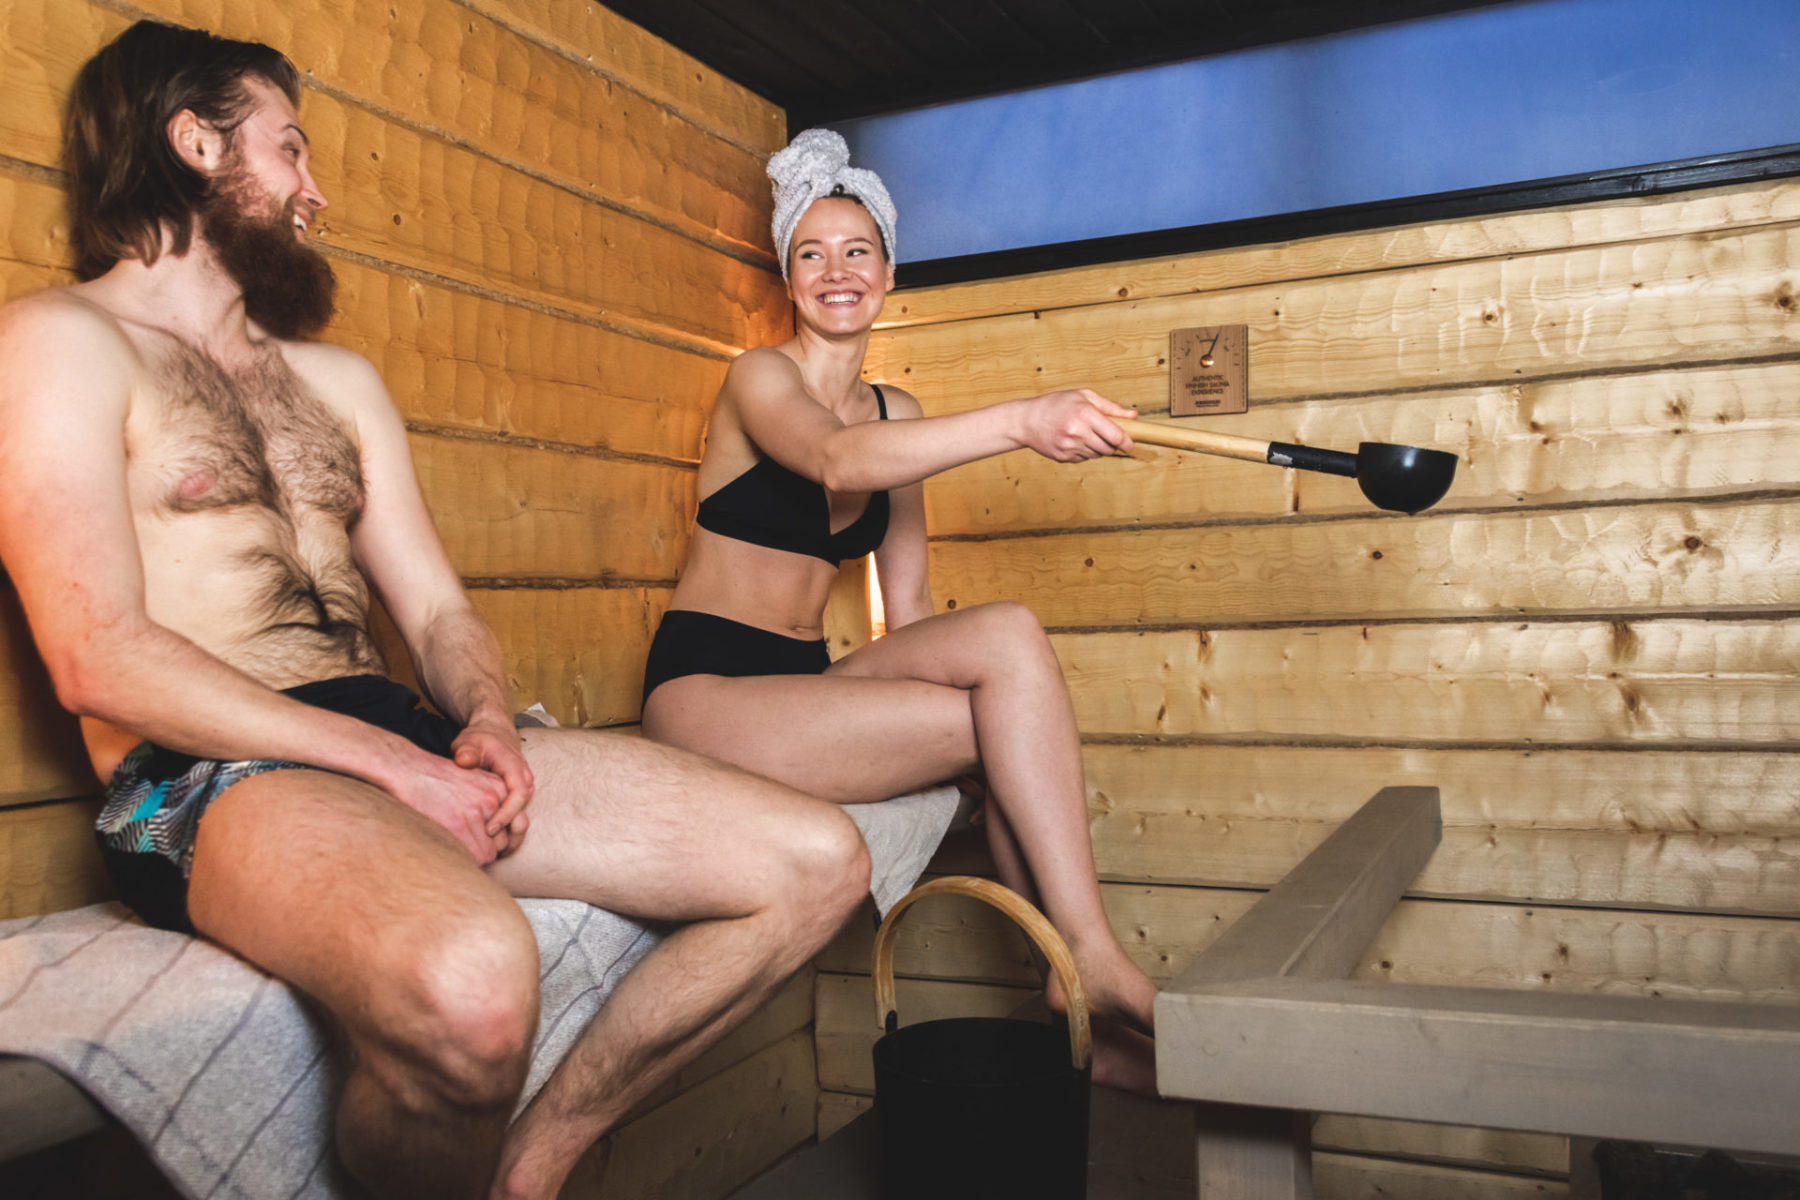 throwing water in sauna